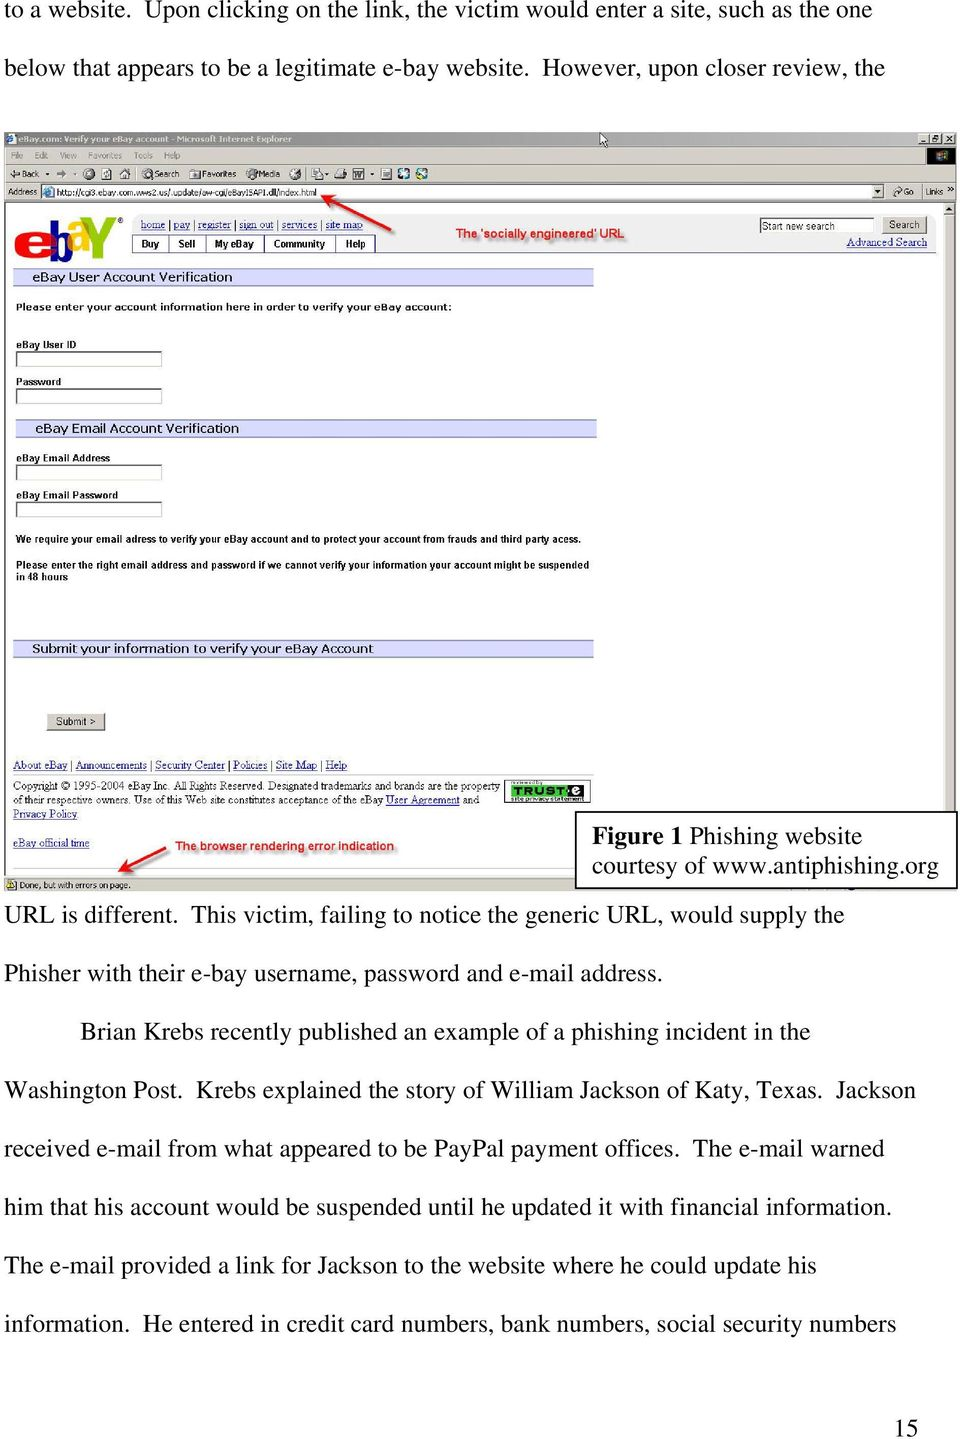 org Brian Krebs recently published an example of a phishing incident in the Washington Post. Krebs explained the story of William Jackson of Katy, Texas.